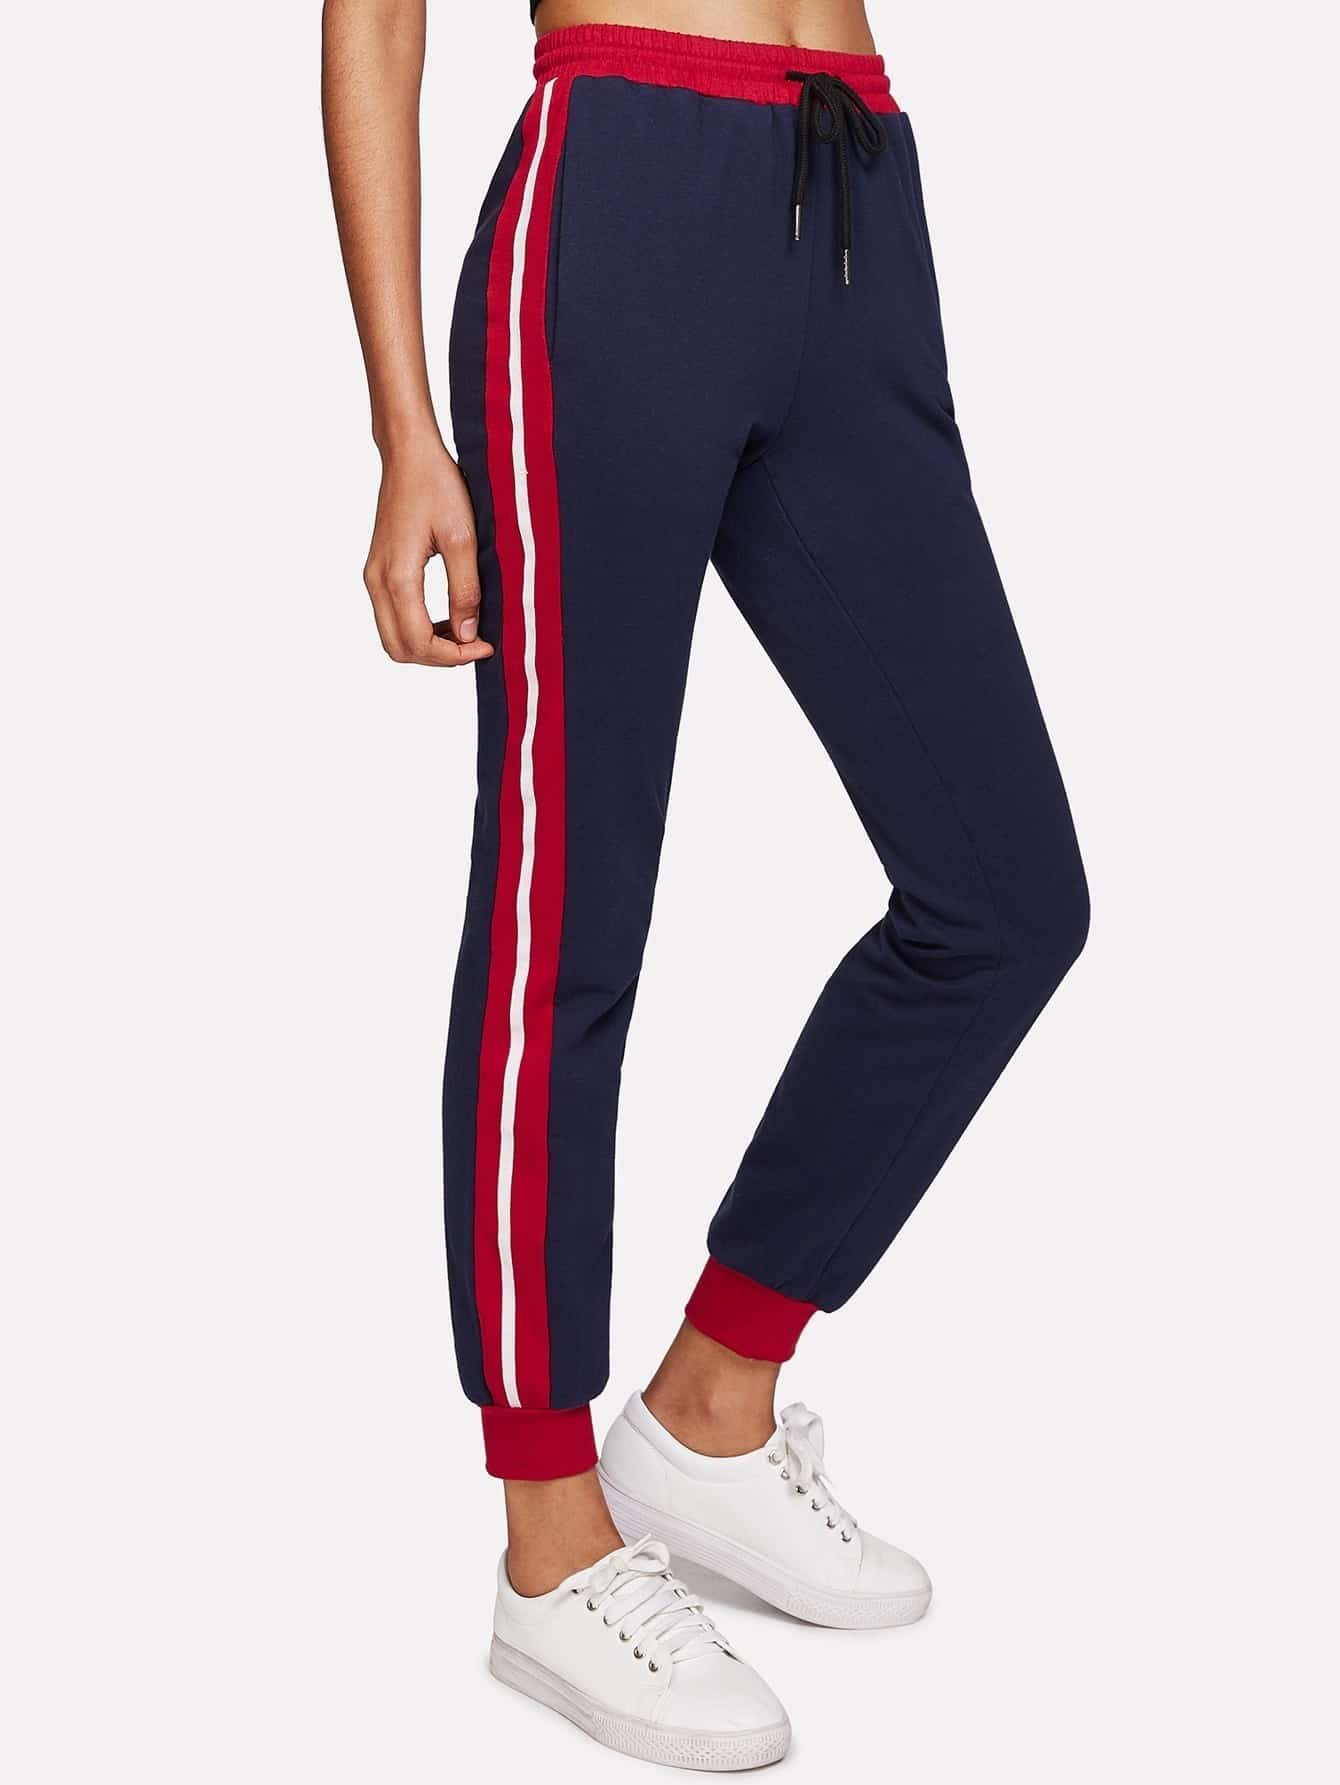 Contrast Panel Side Heather Knit Sweatpants contrast striped side sweatpants